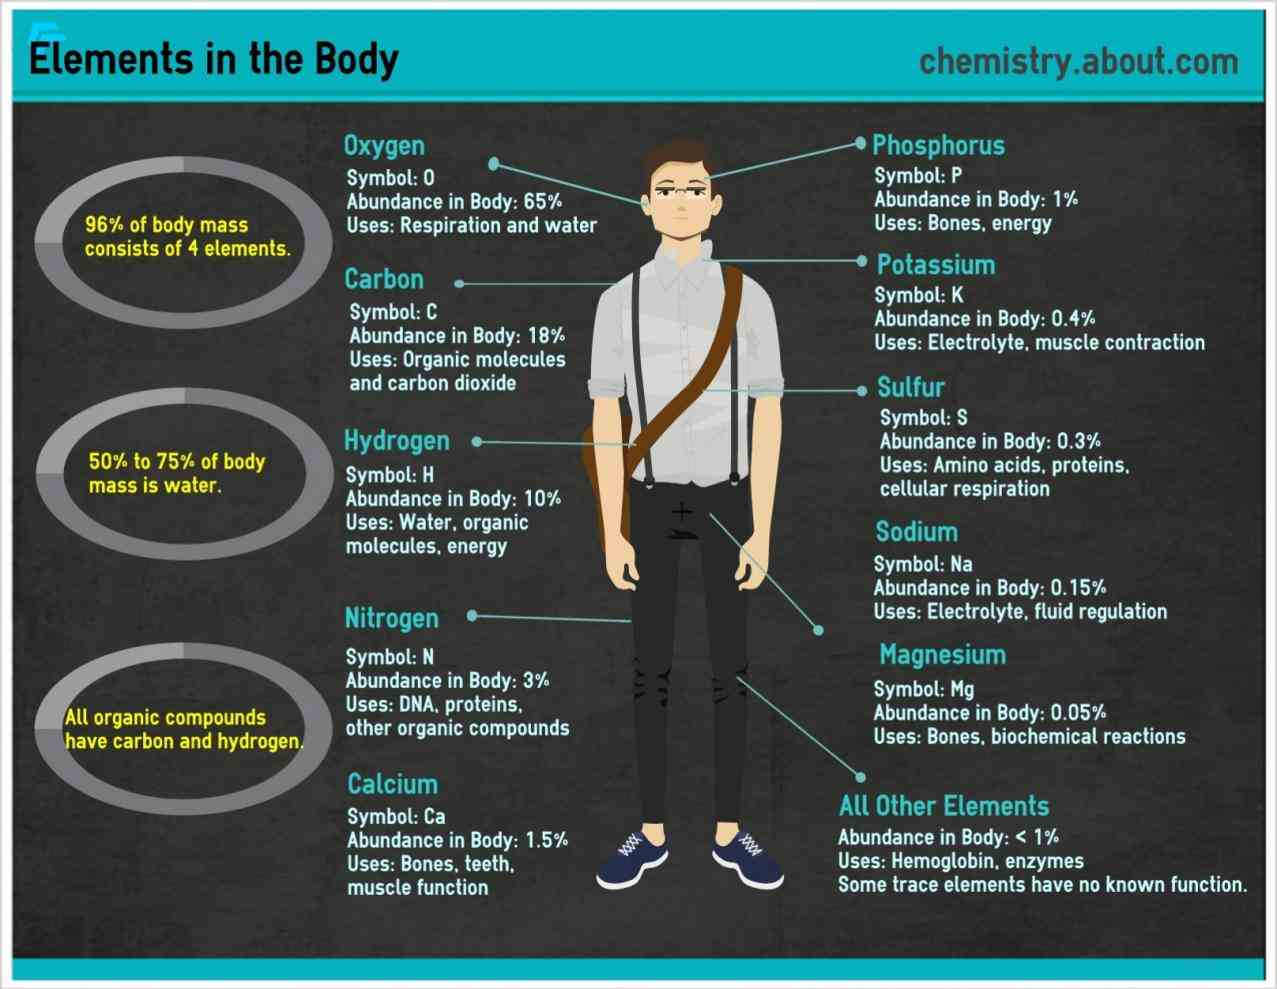 The Human Body elements are found in the human body there that occur naturally on earth for living things